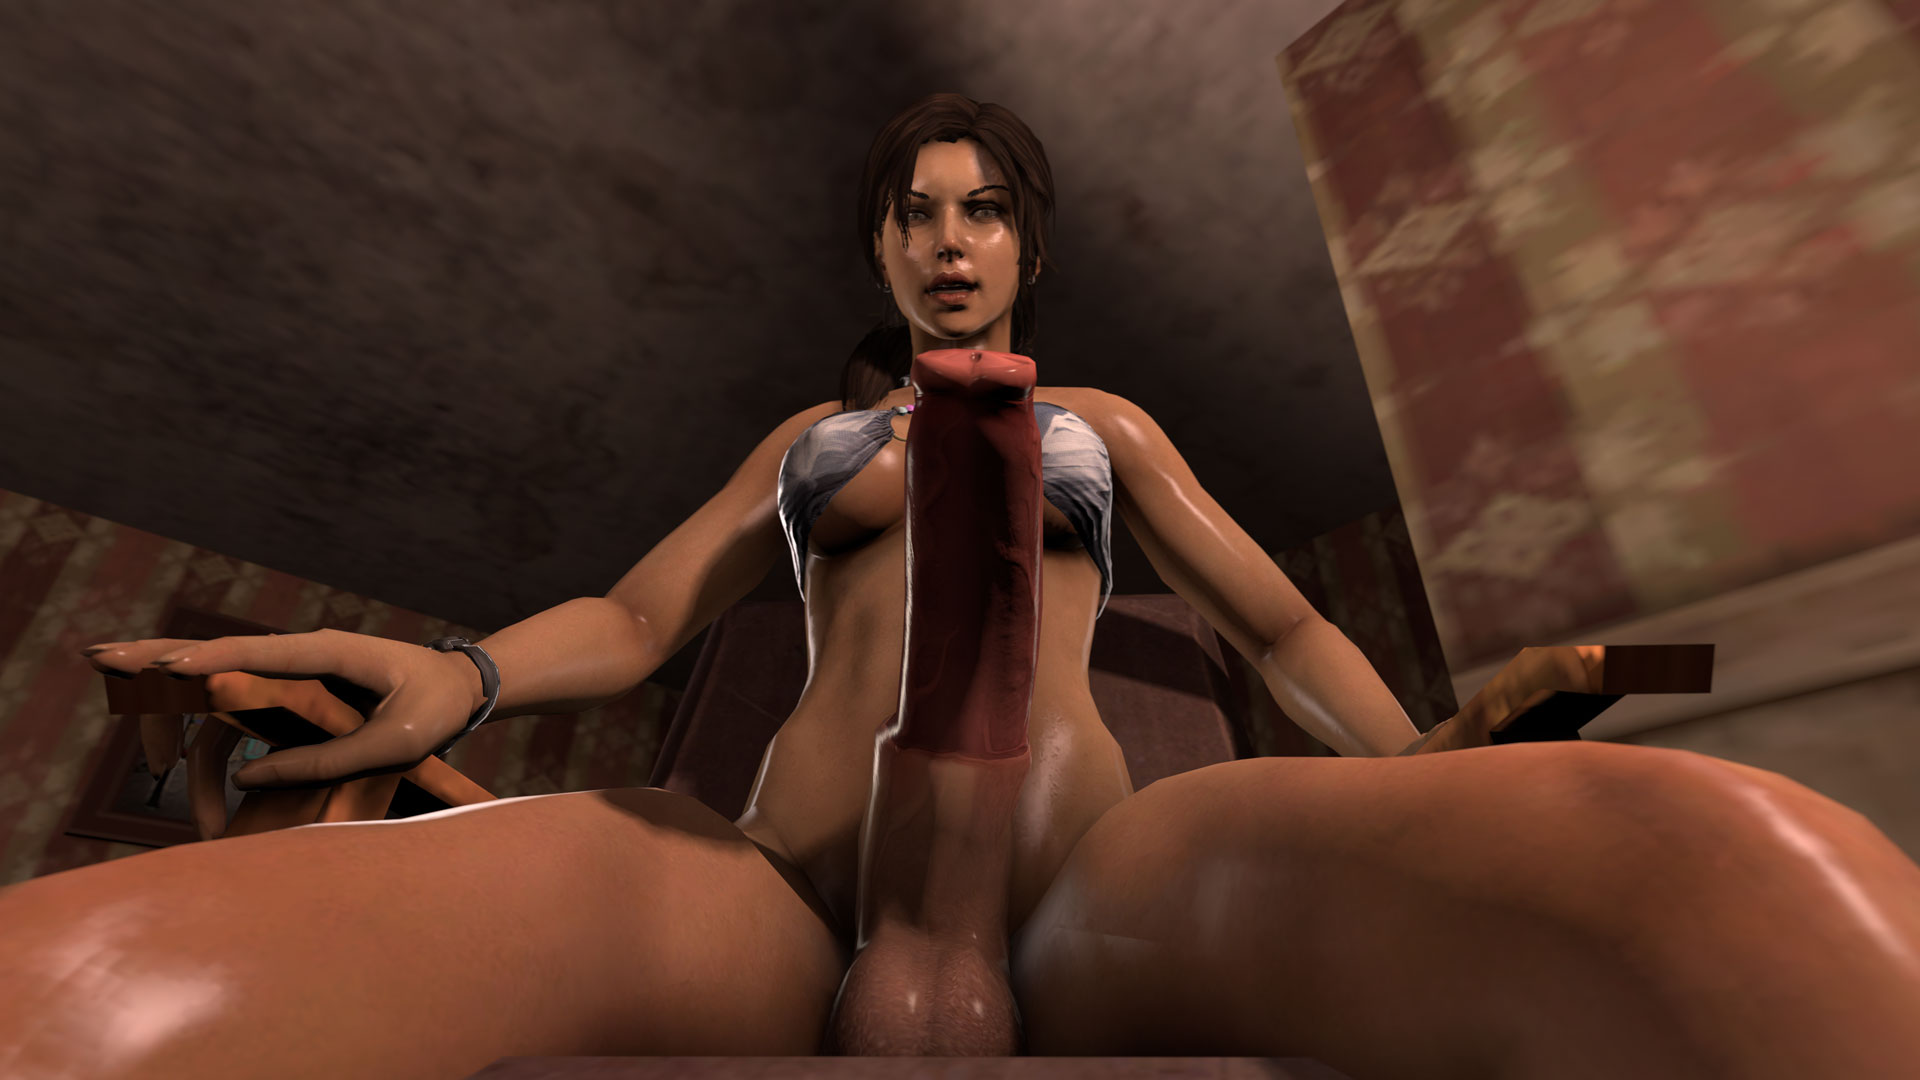 Fotos porno tomb raider naked movies